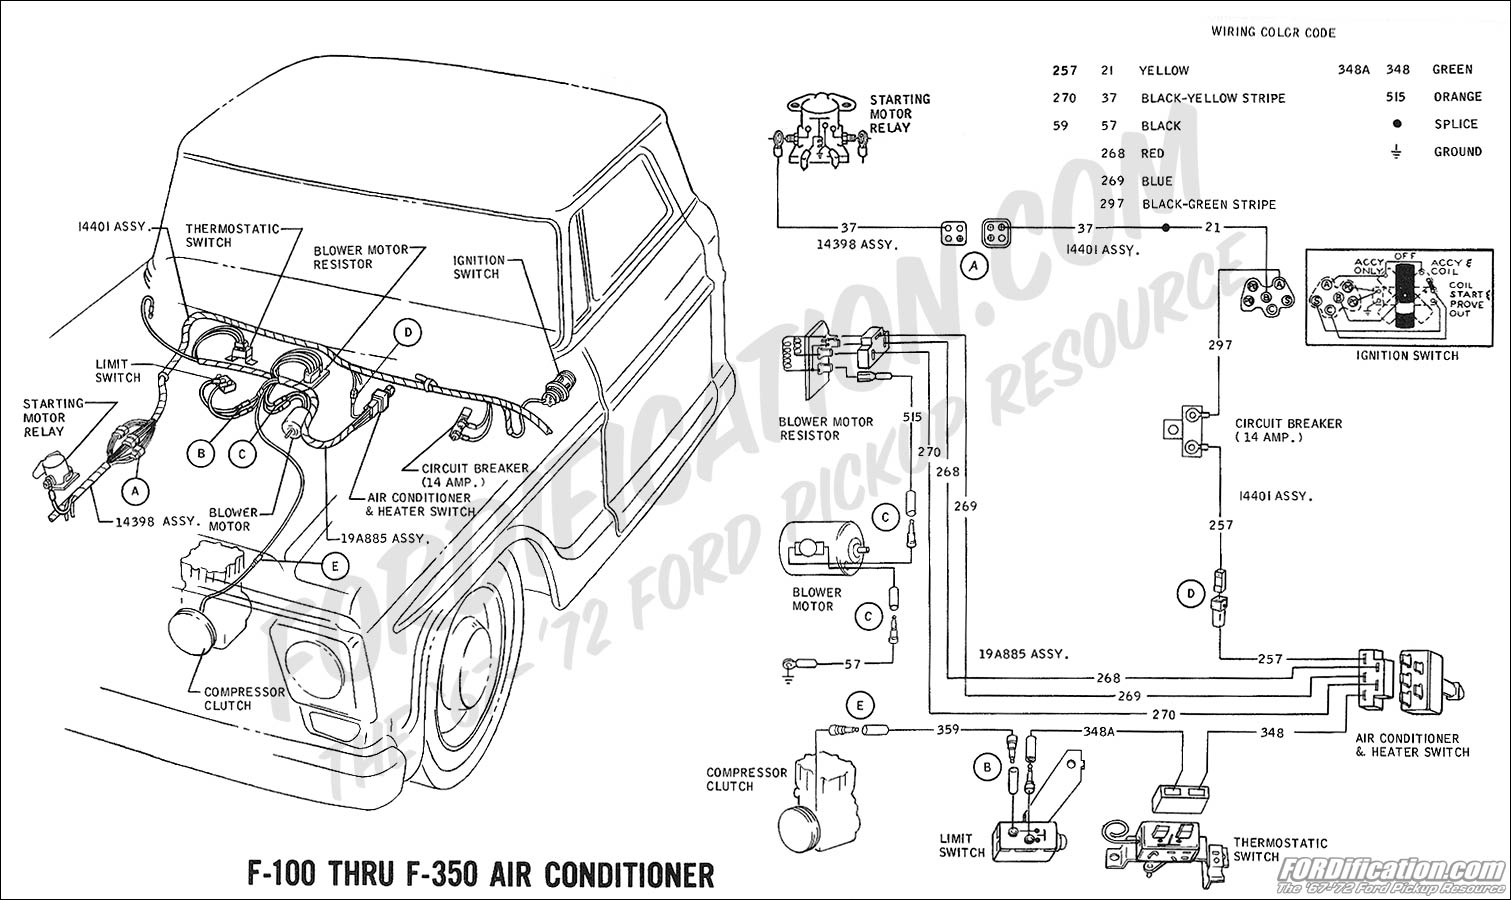 2004 Ford Expedition Air Conditioning Wiring Diagram Smart Explorer 2008 Illustration Of Rh Davisfamilyreunion Us F150 Radio